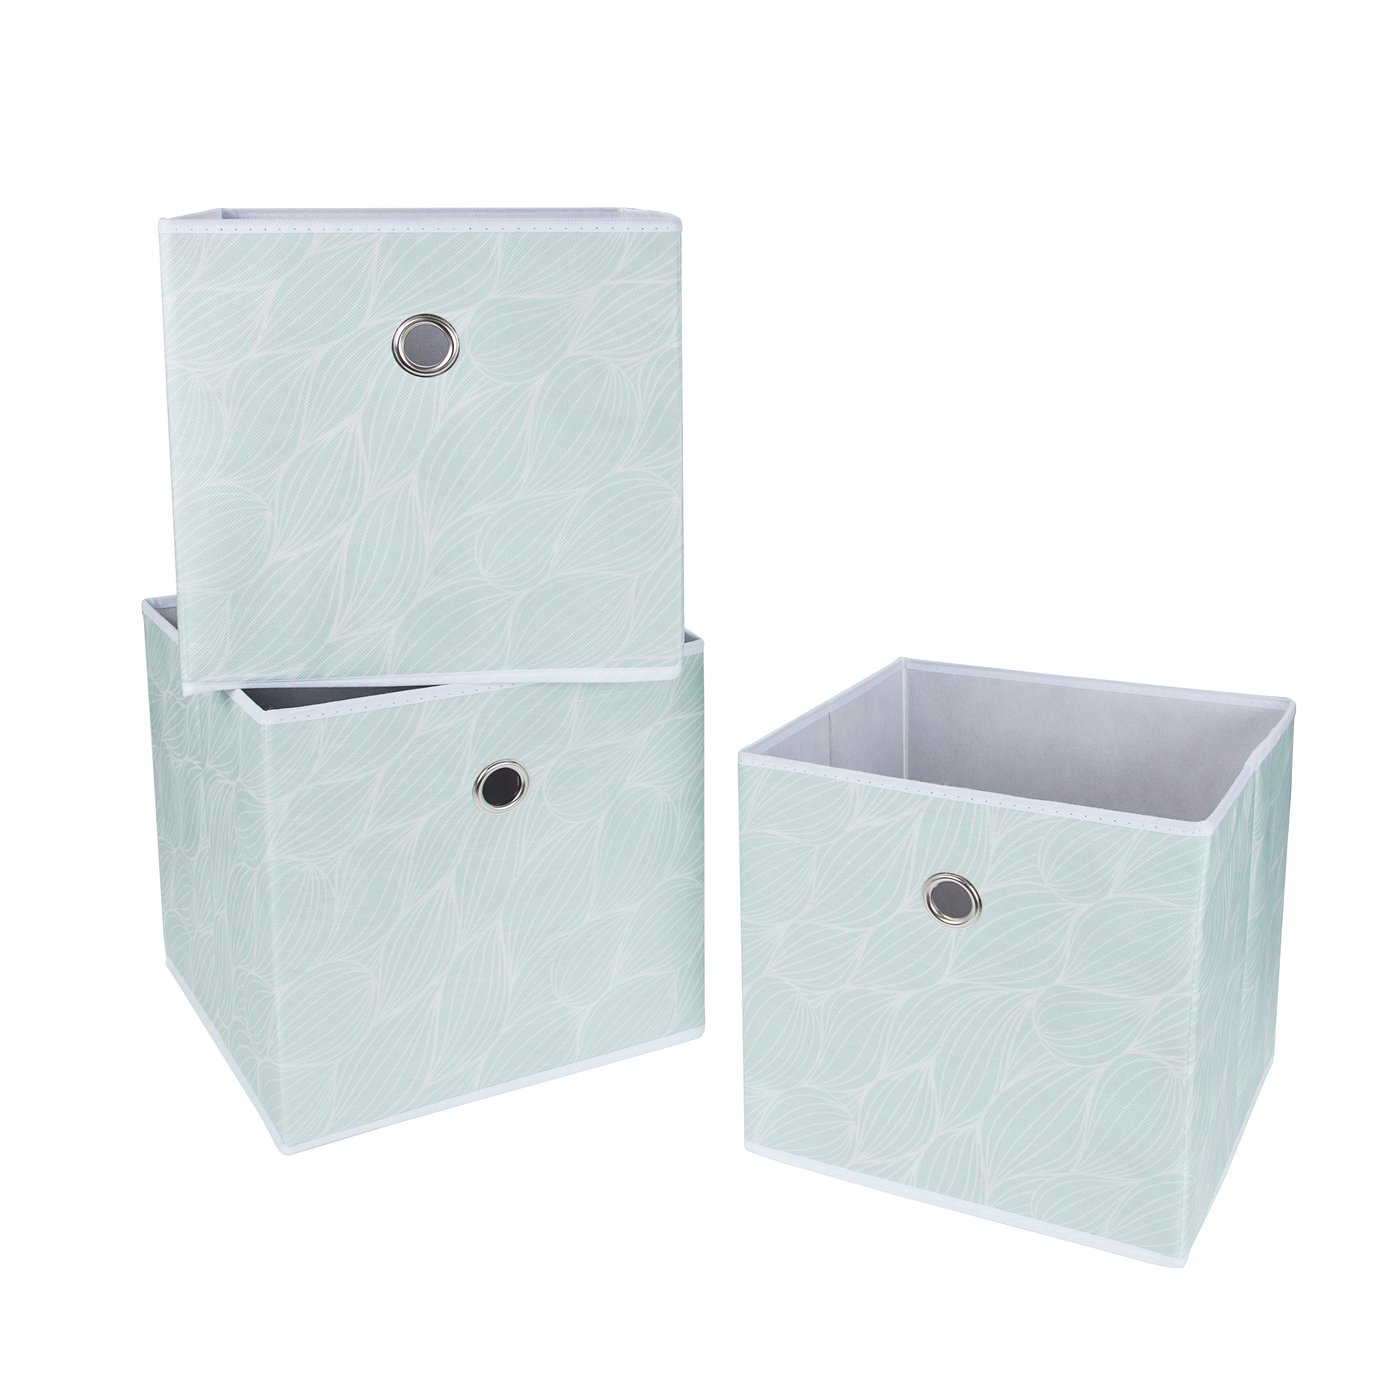 Amazon com sbs collapsible foldable fabric storage boxes cubes bins baskets mint green leaf pattern 3 pack each storage bin measures 11 8 inches on